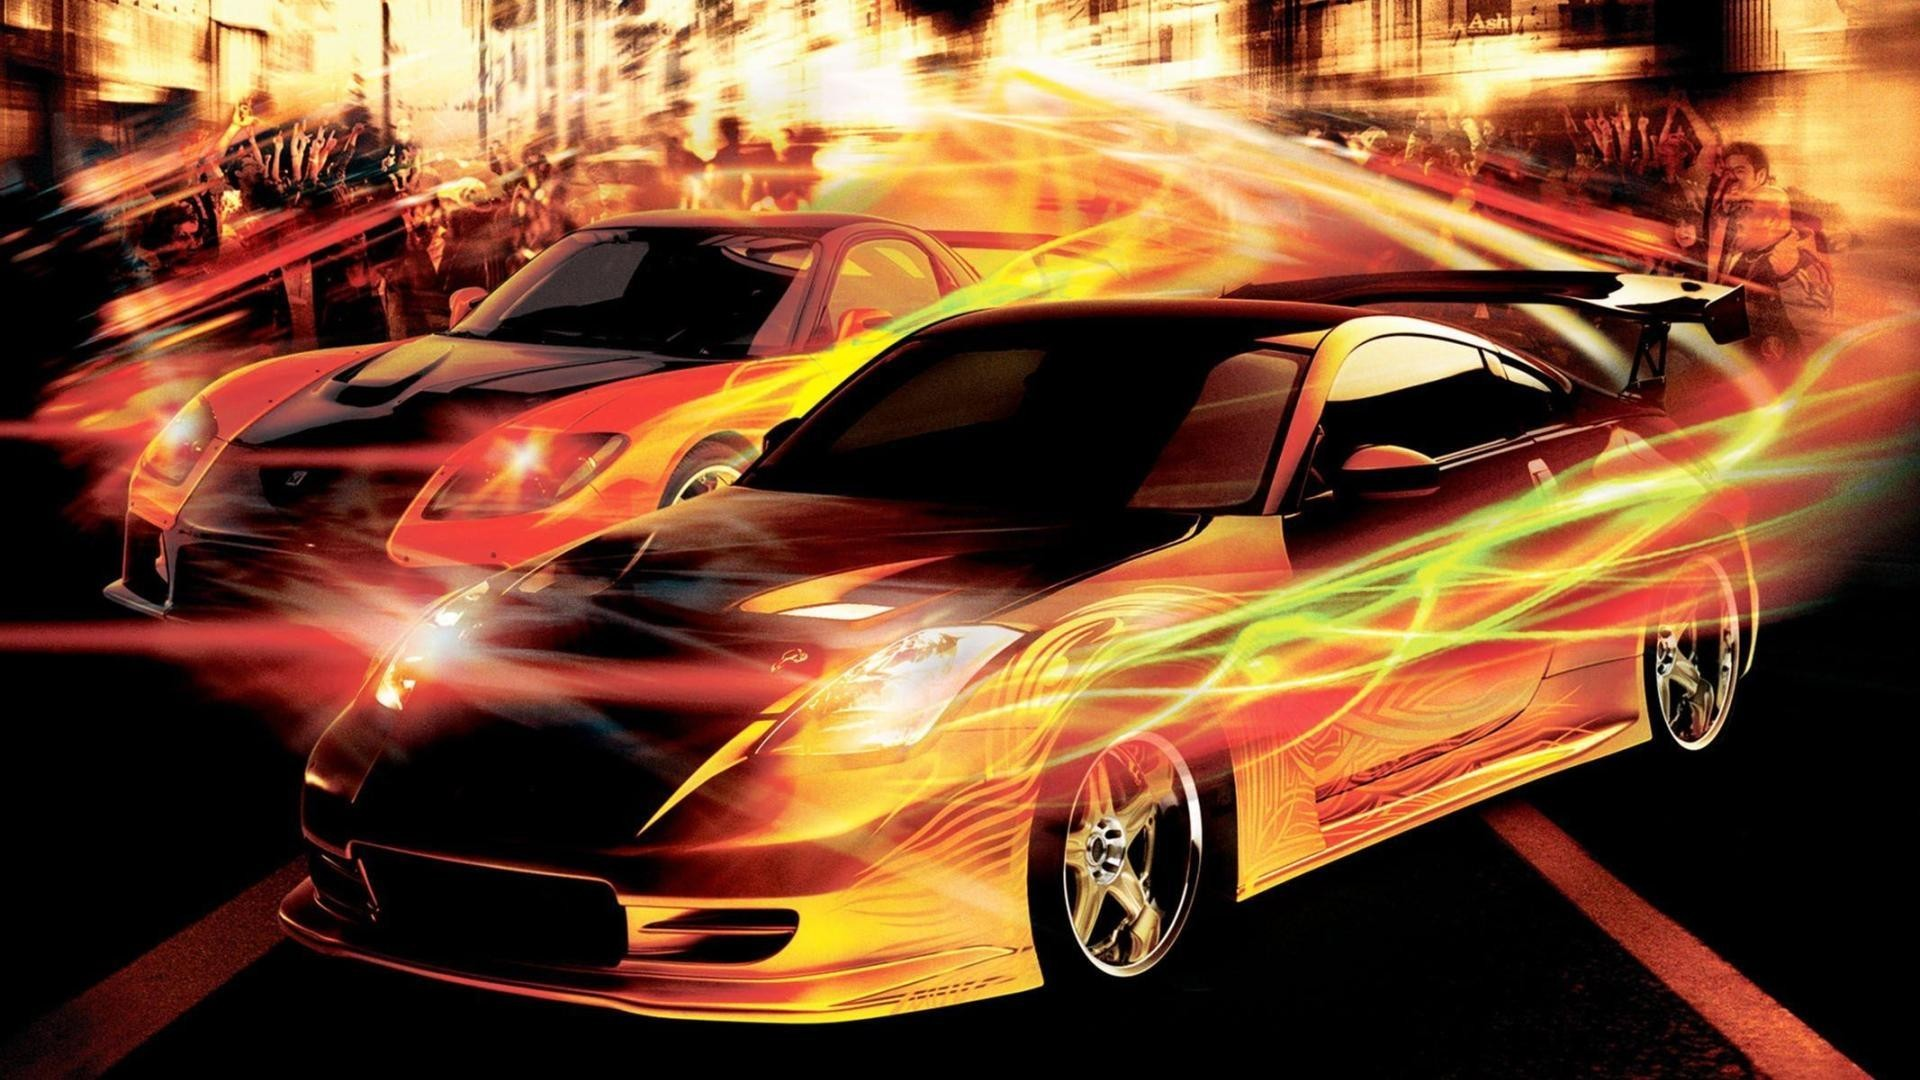 Fast And Furious 3 Full Movie >> The Fast And The Furious Tokyo Drift Theme Song Movie Theme Songs